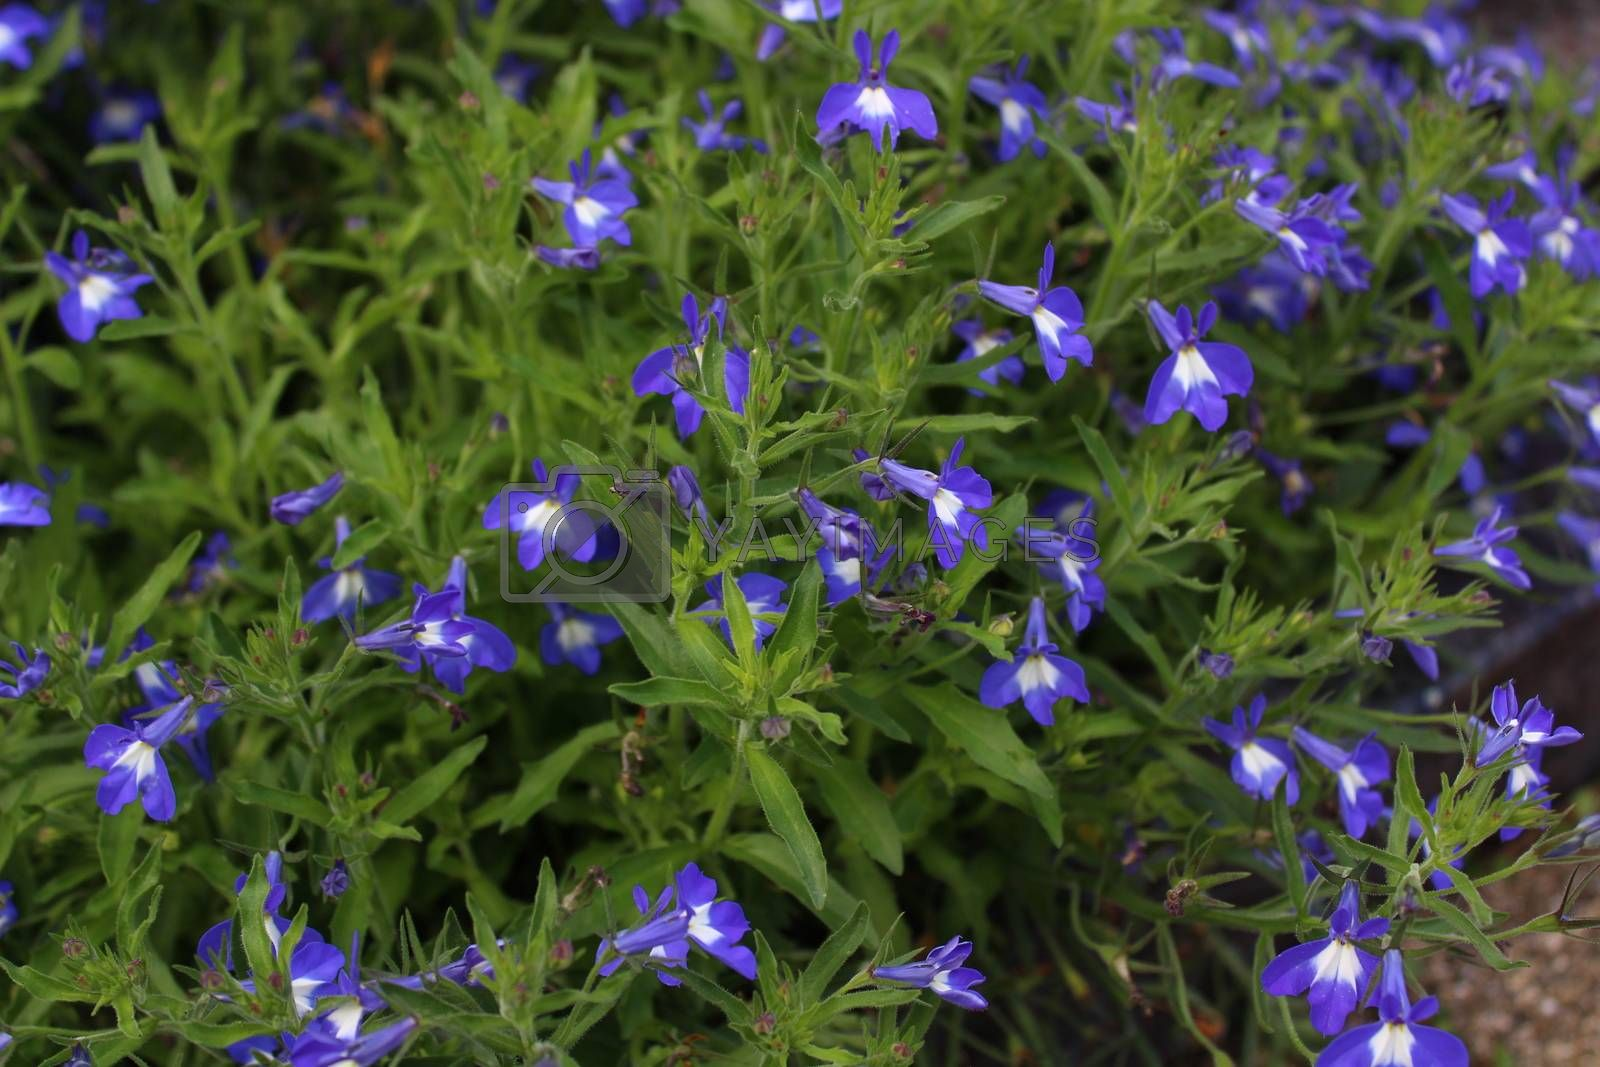 Royalty free image of a field with lobelia in the garden by martina_unbehauen